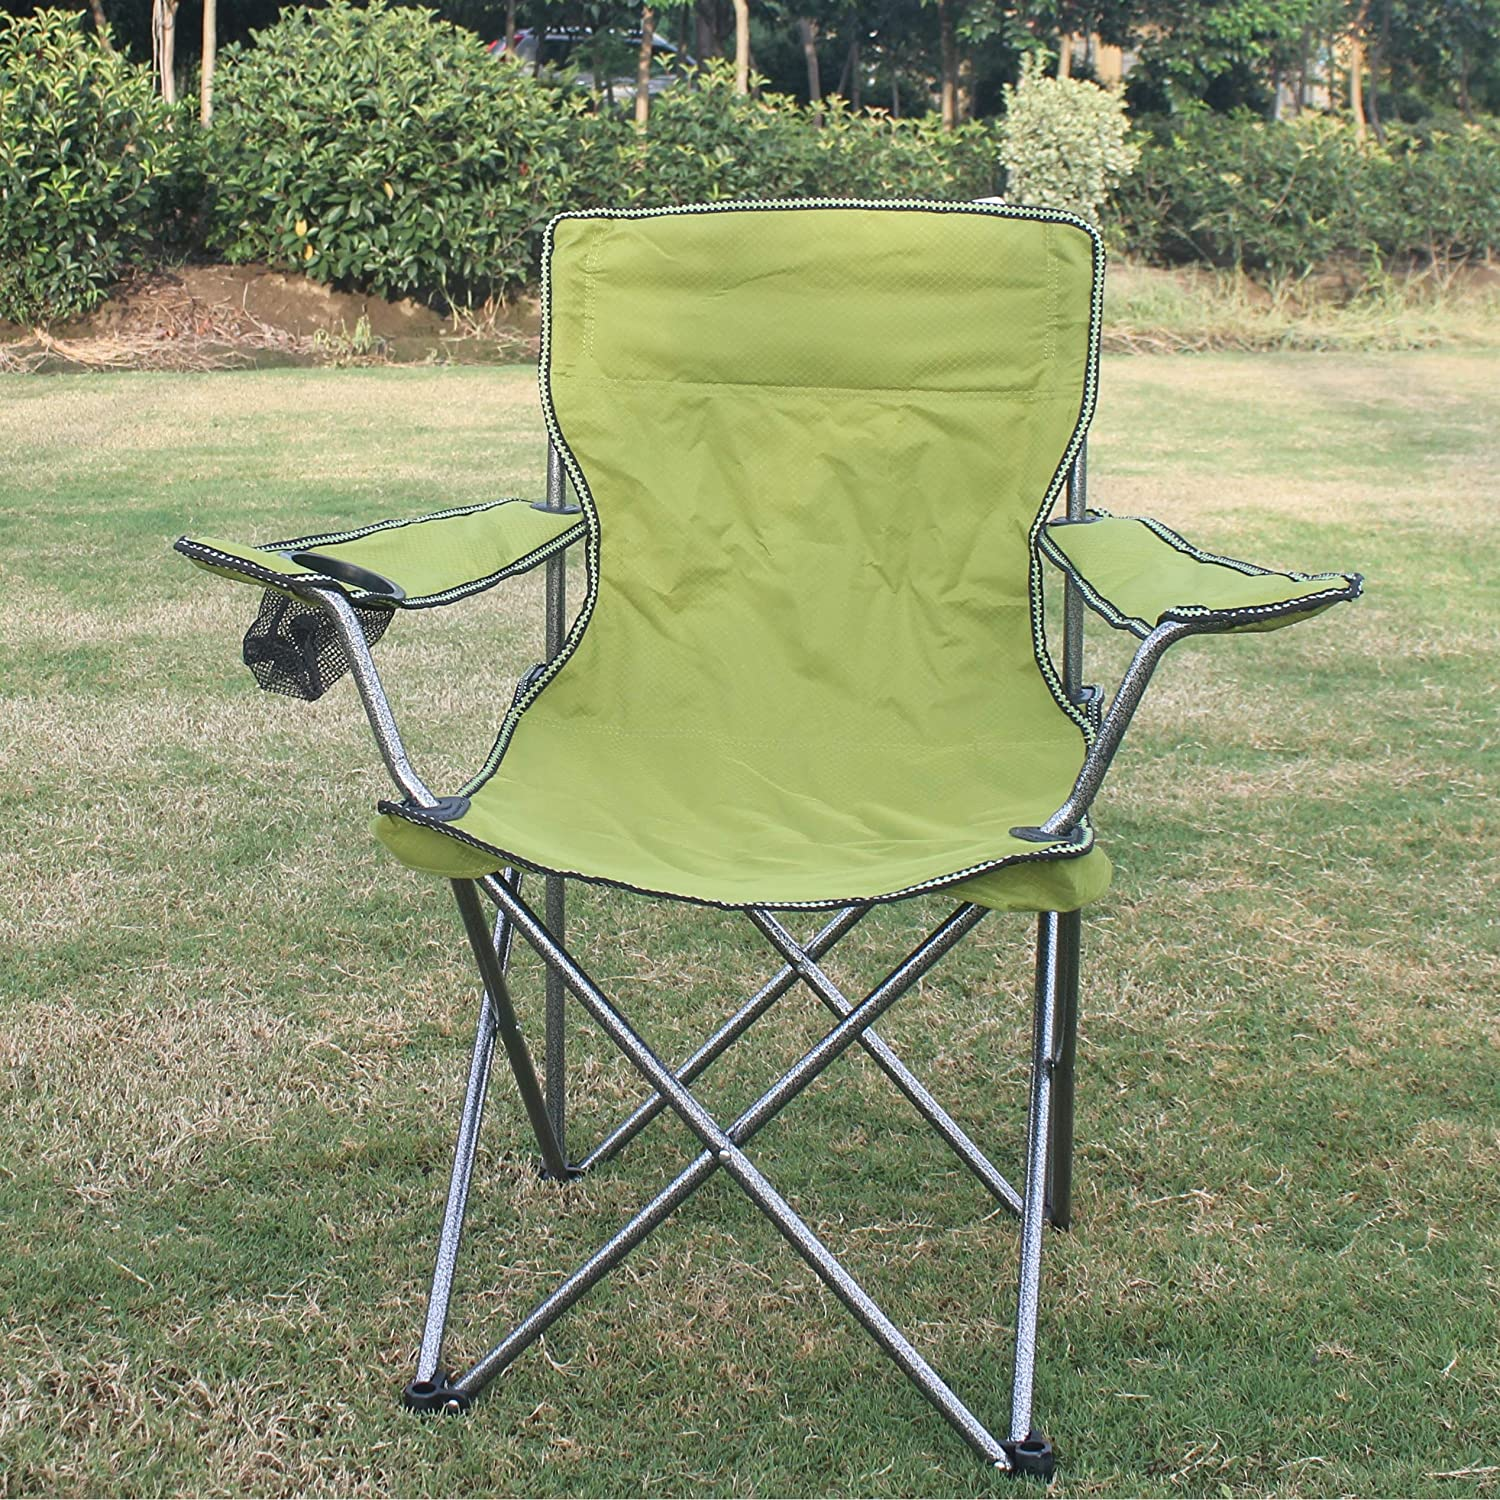 cmarte Foldable Outdoor Chair with Mesh Cup Holder for Picnic, Camping, Fishing Beach Party